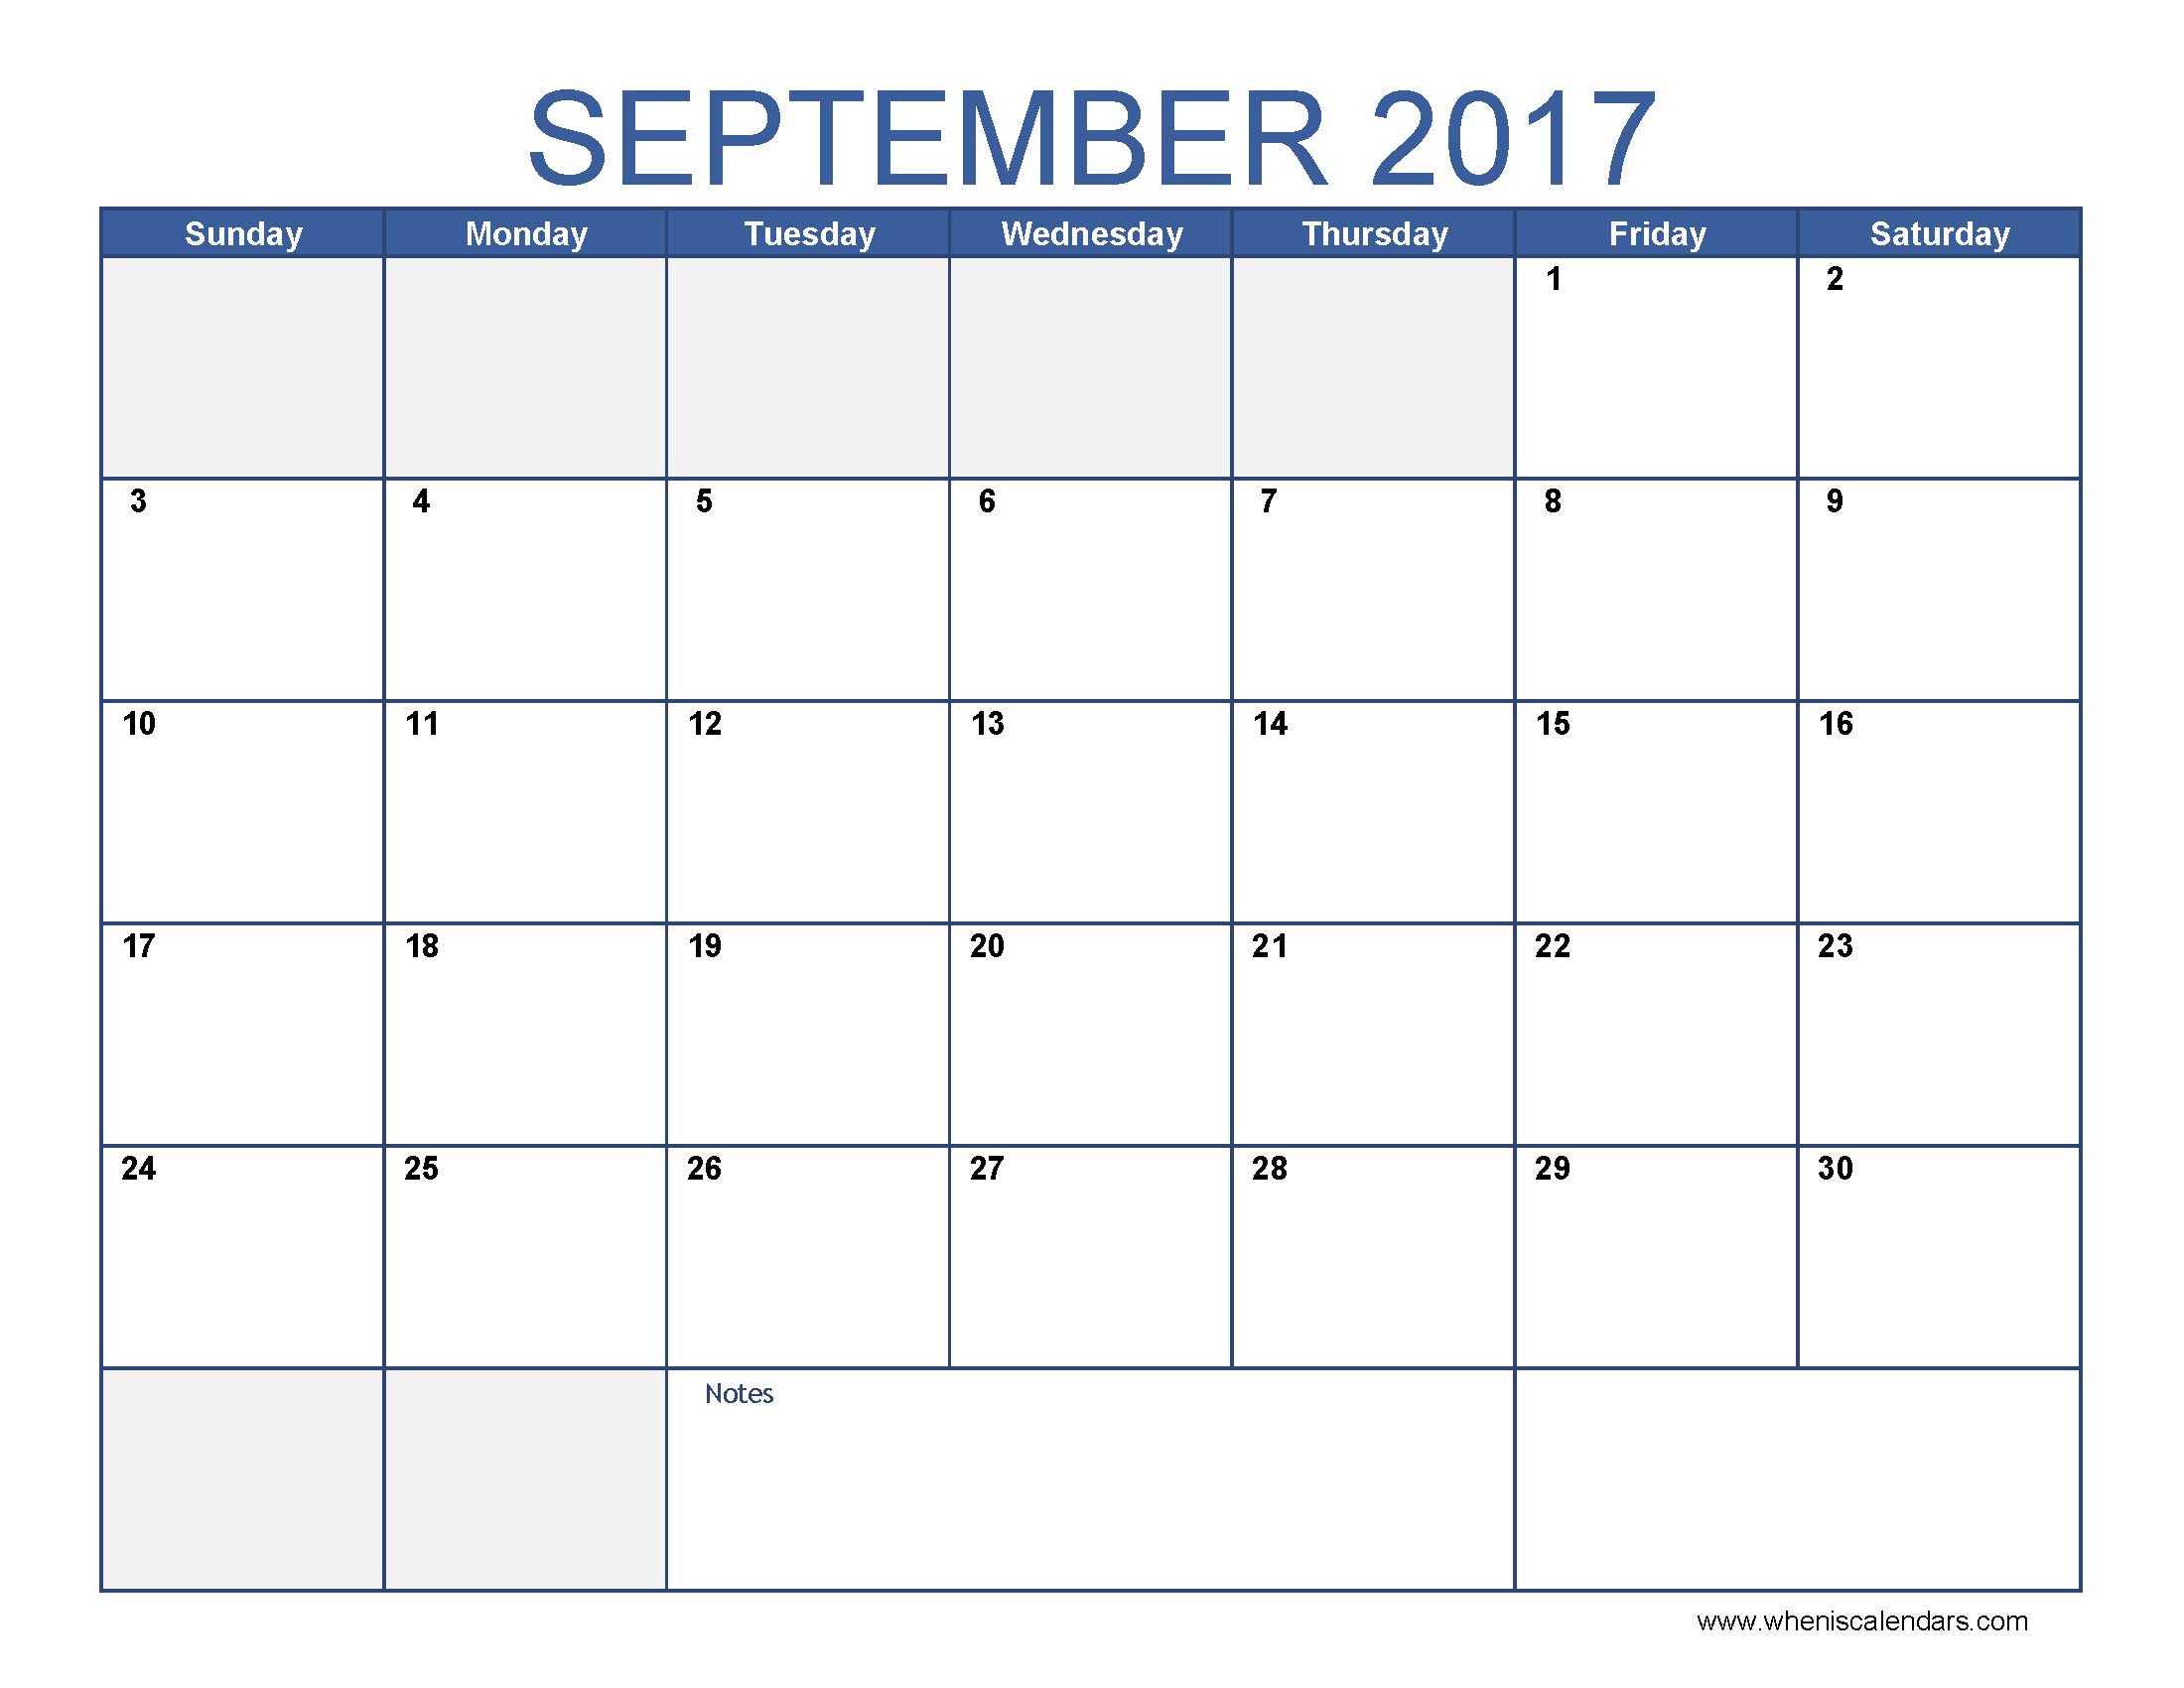 September 2017 Calendar Template Printable Monthly Calendar When